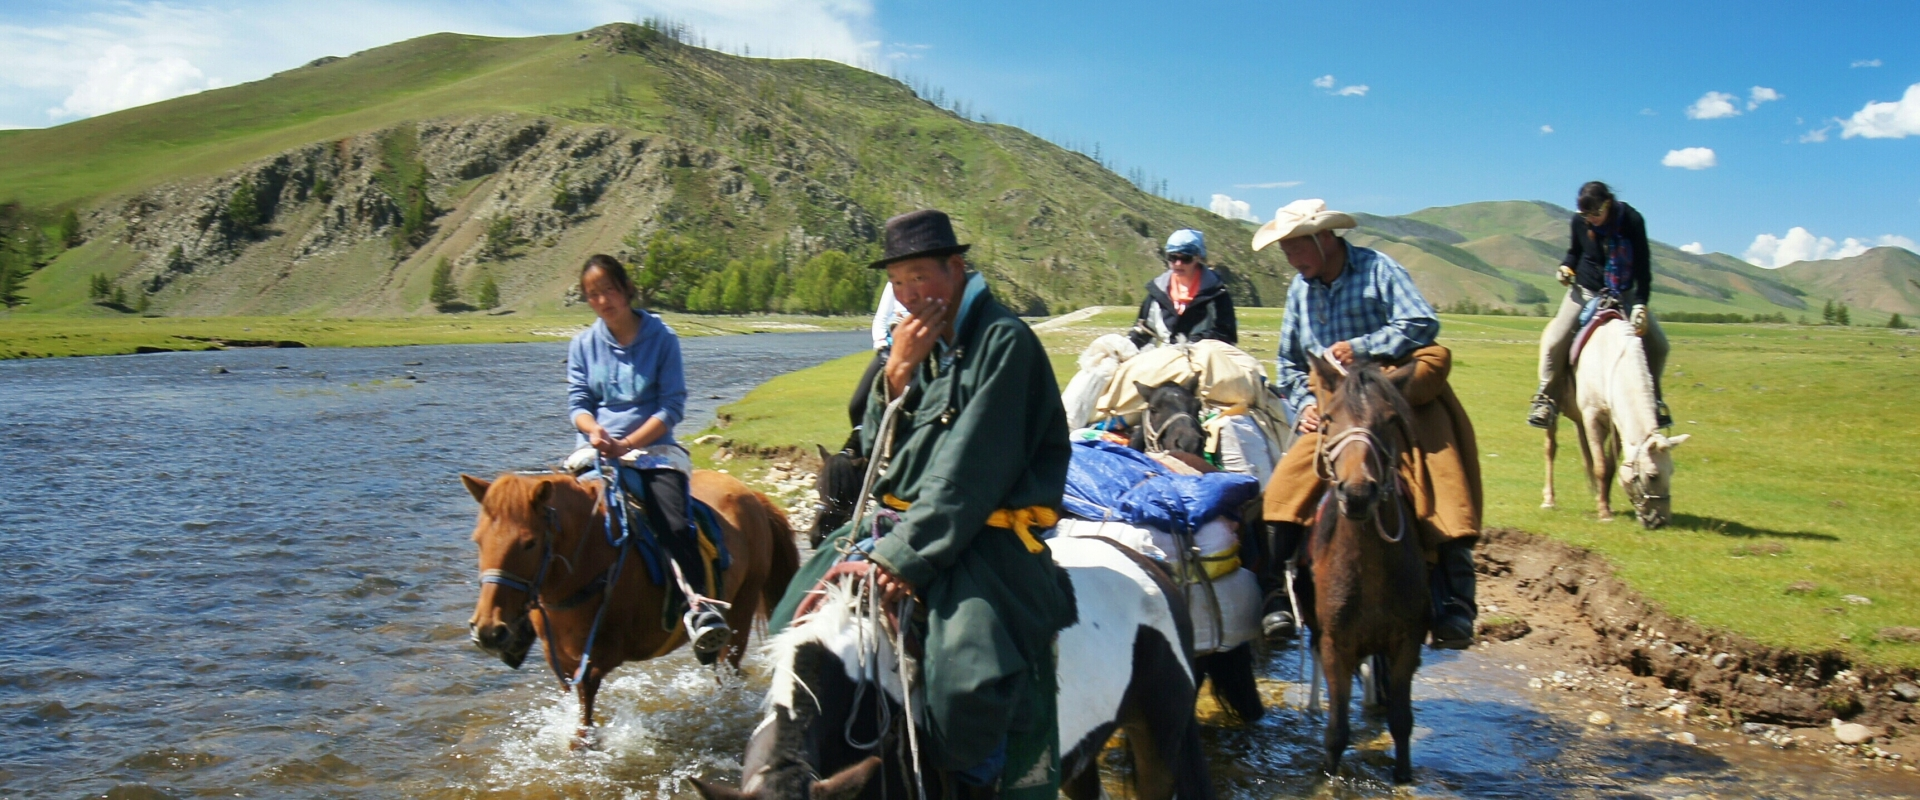 Explore Arkhangai on horseback with experienced guides